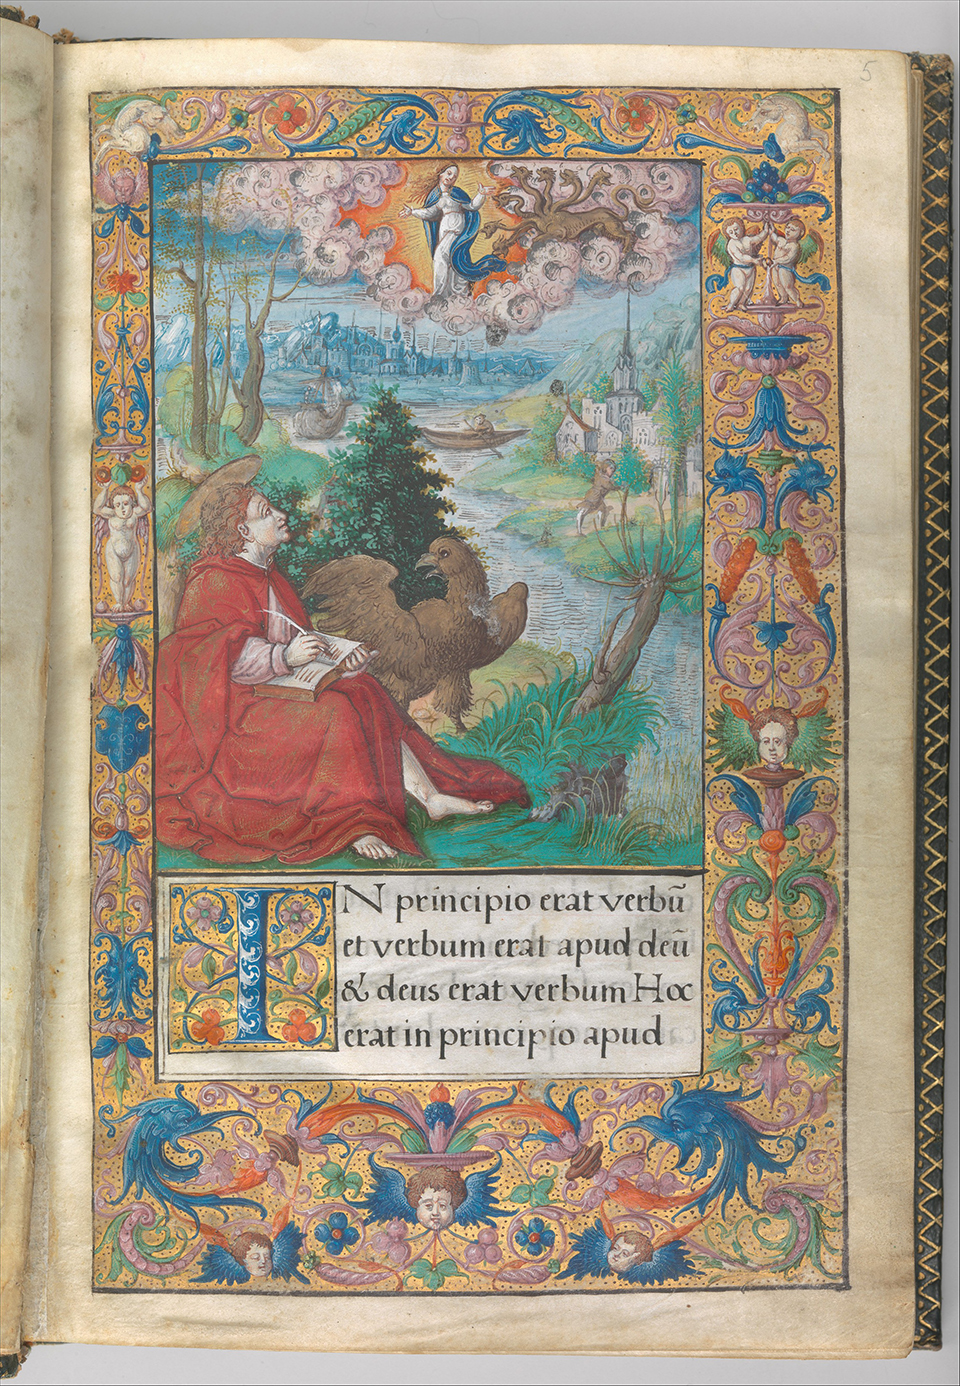 DP265425 Illuminated Book of Hours made for King Francis I.